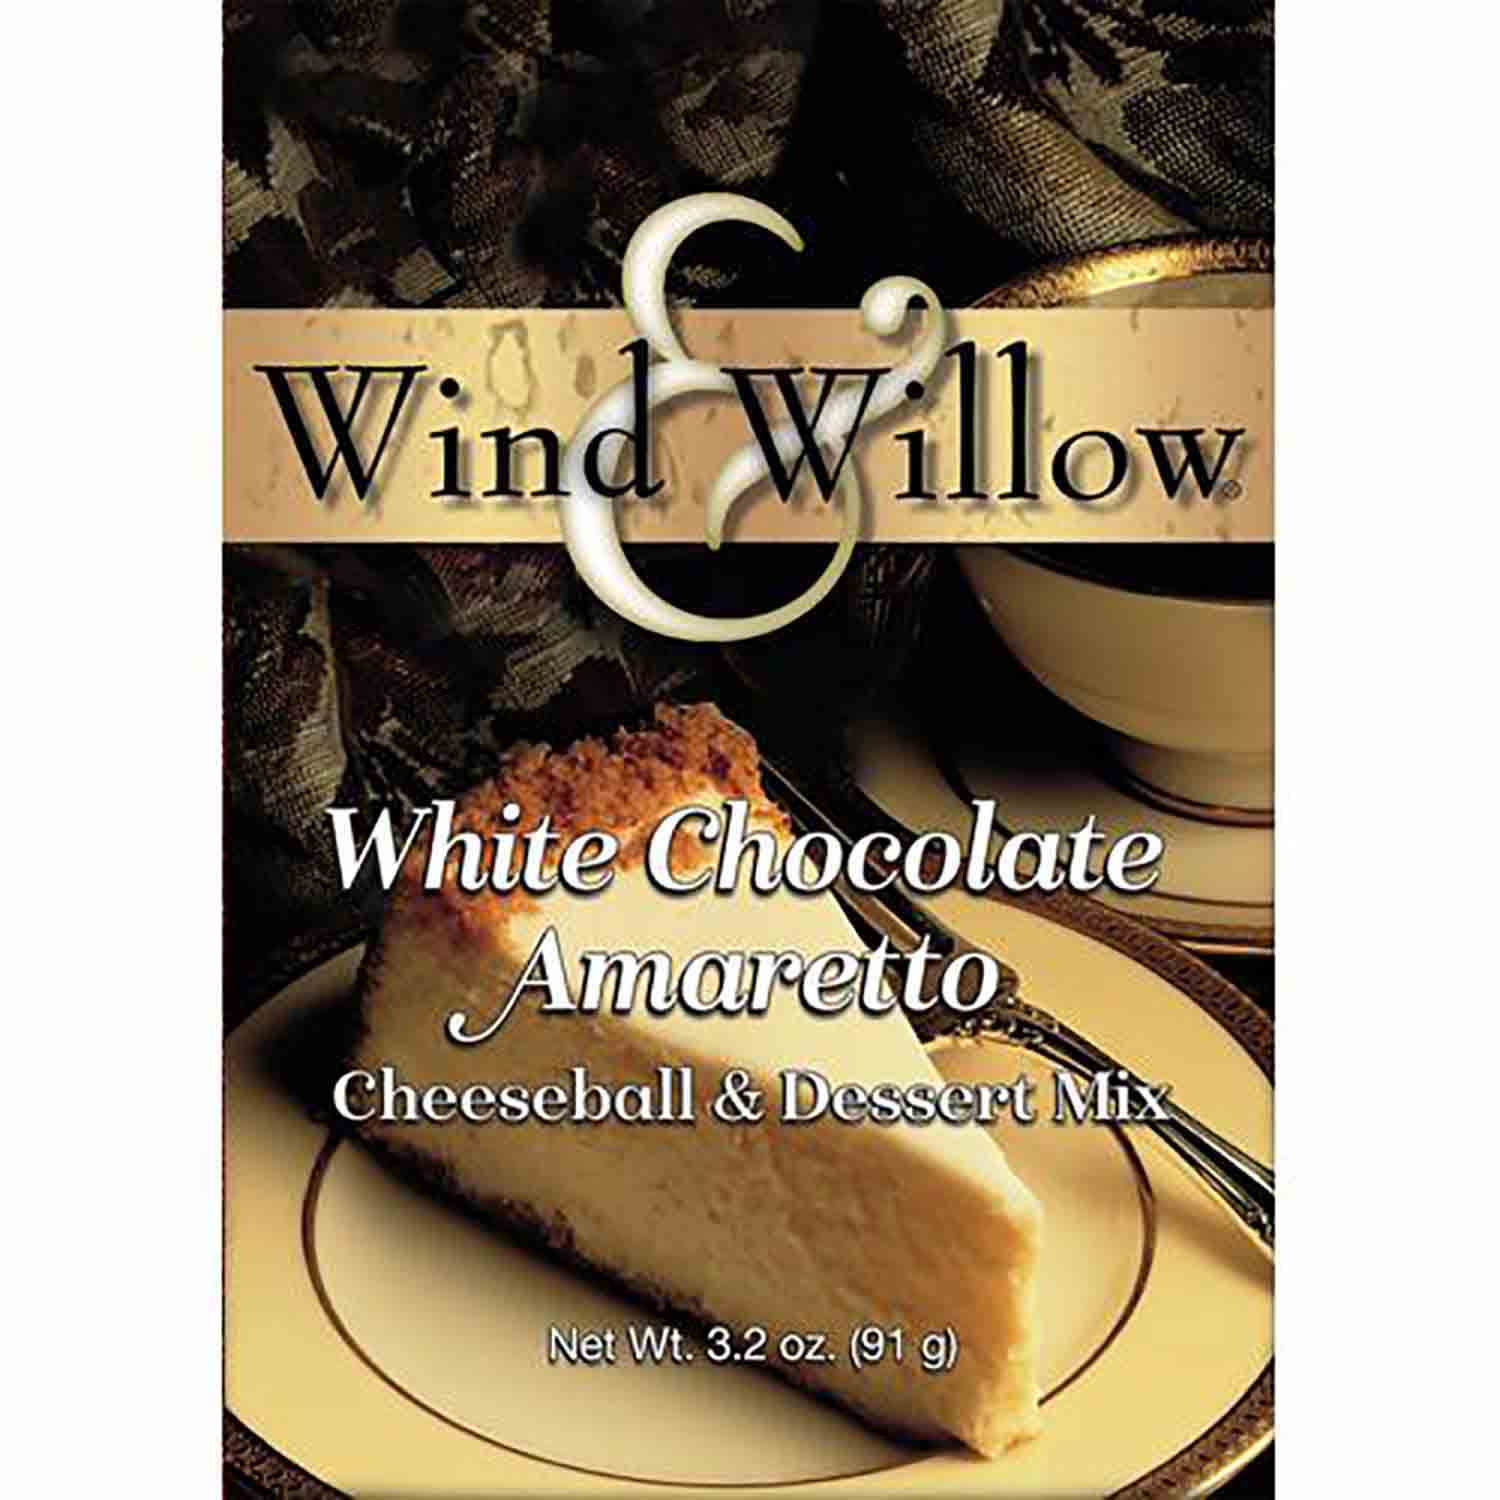 White Chocolate Amaretto Wind & Willow Cheeseball Mix